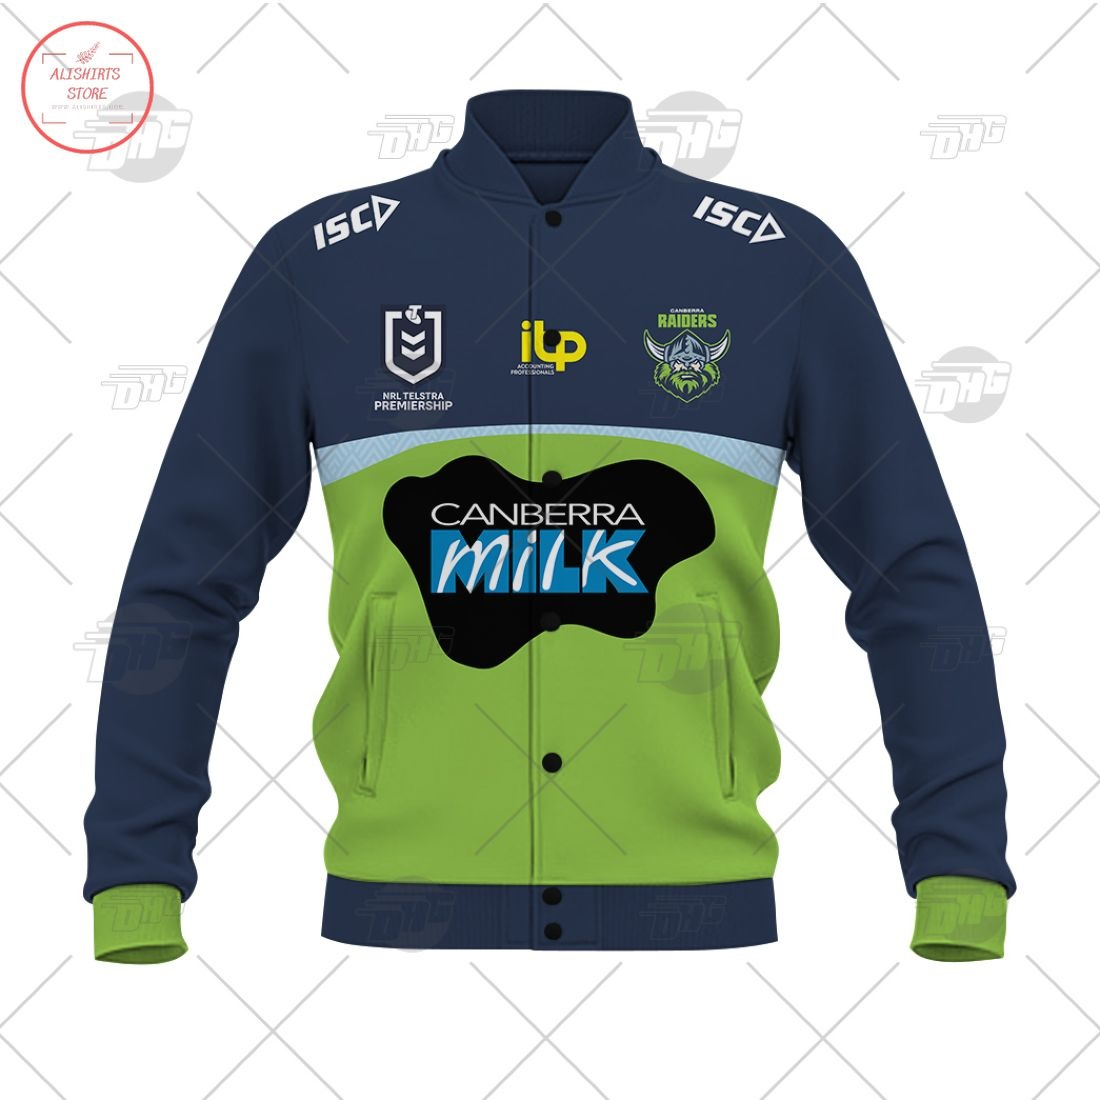 Personalized NRL Canberra Raiders 2021 Letterman Jacket